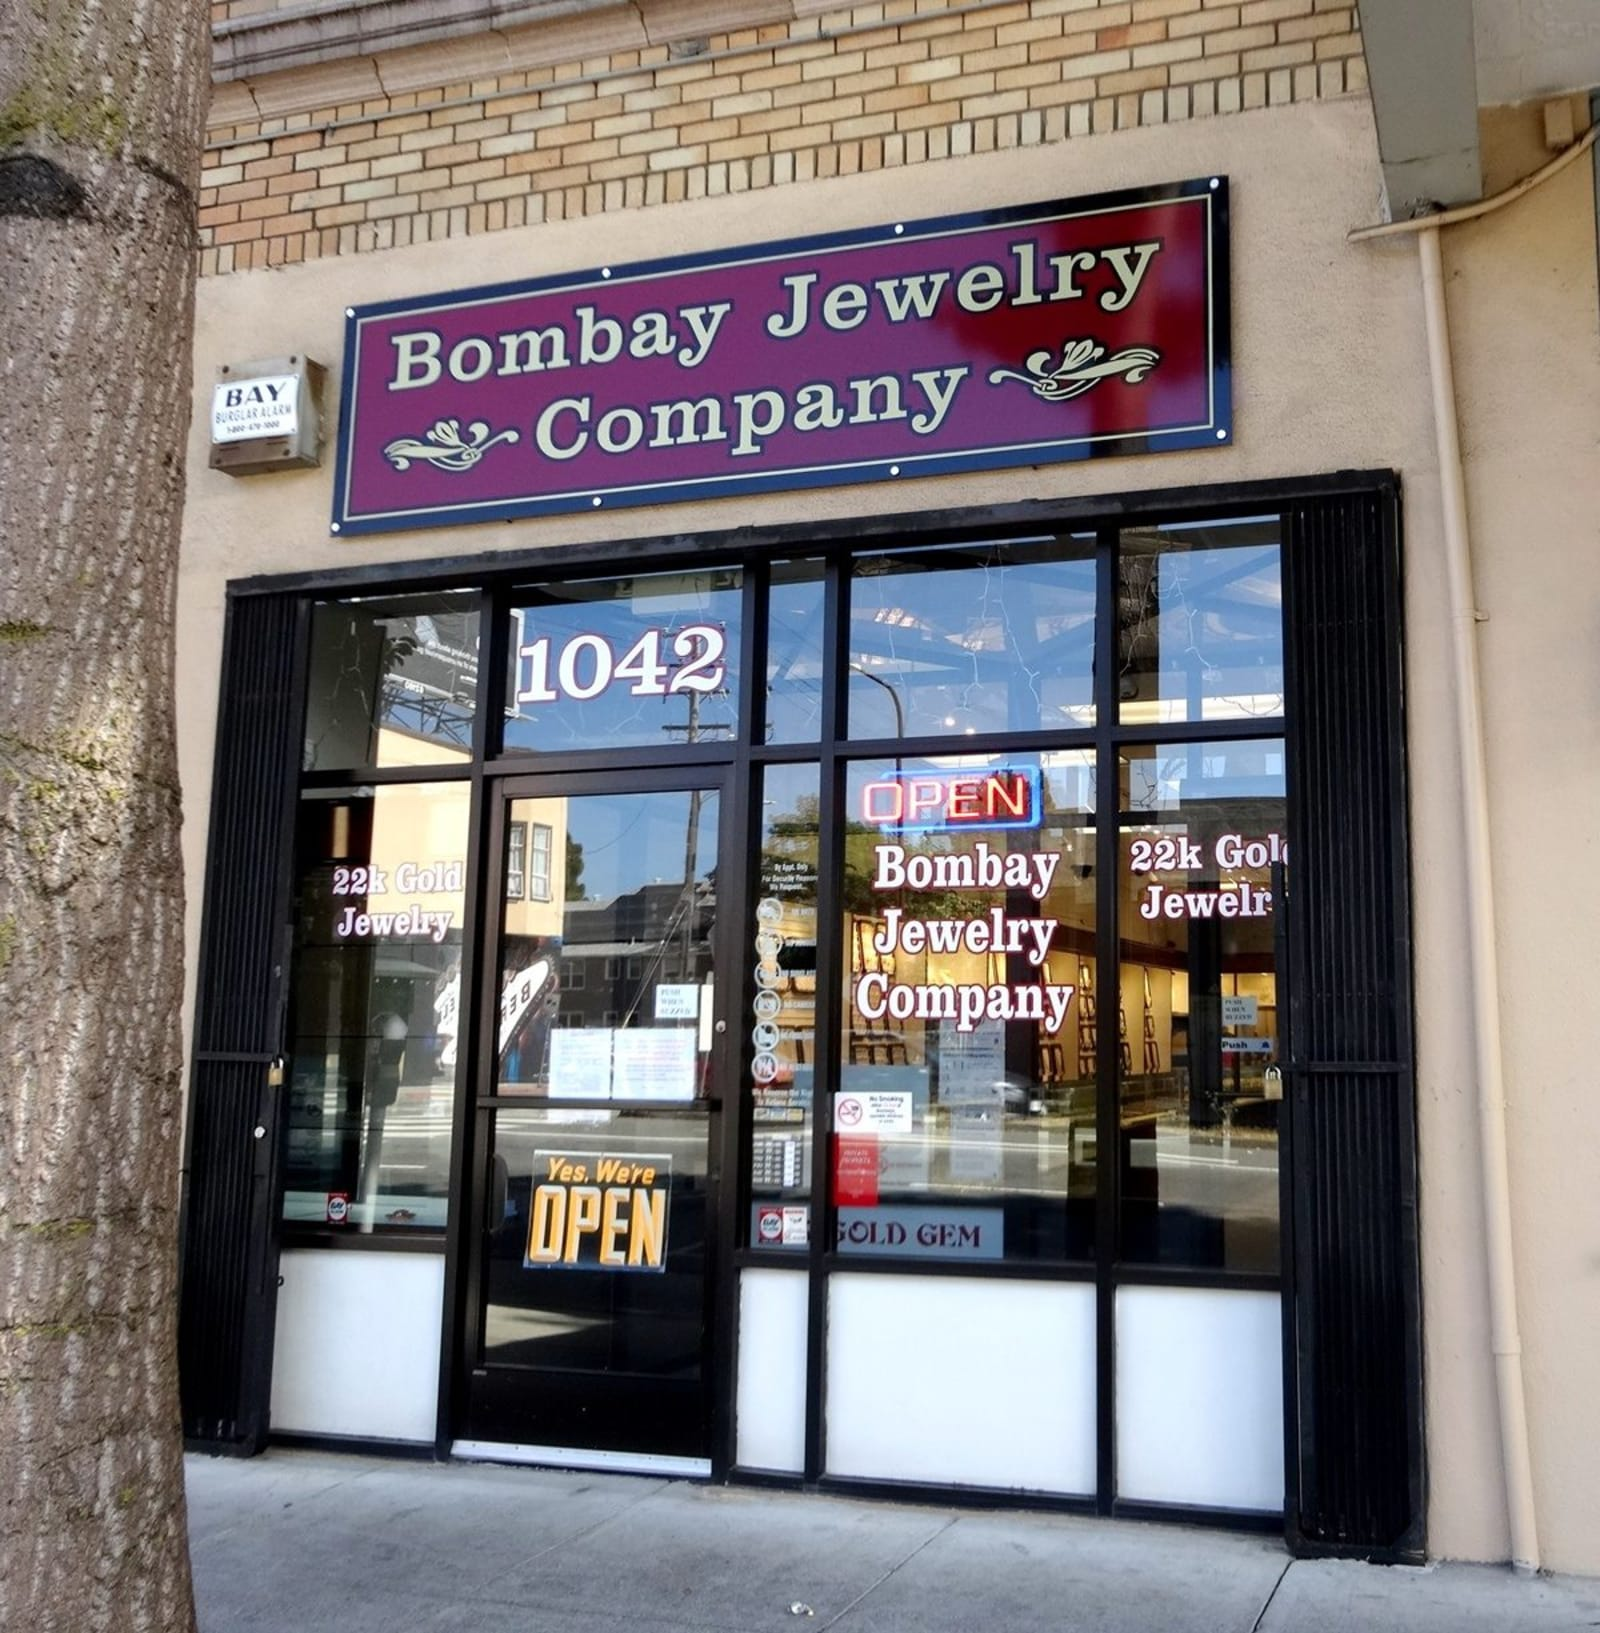 Gifts at Bombay Jewelry Company